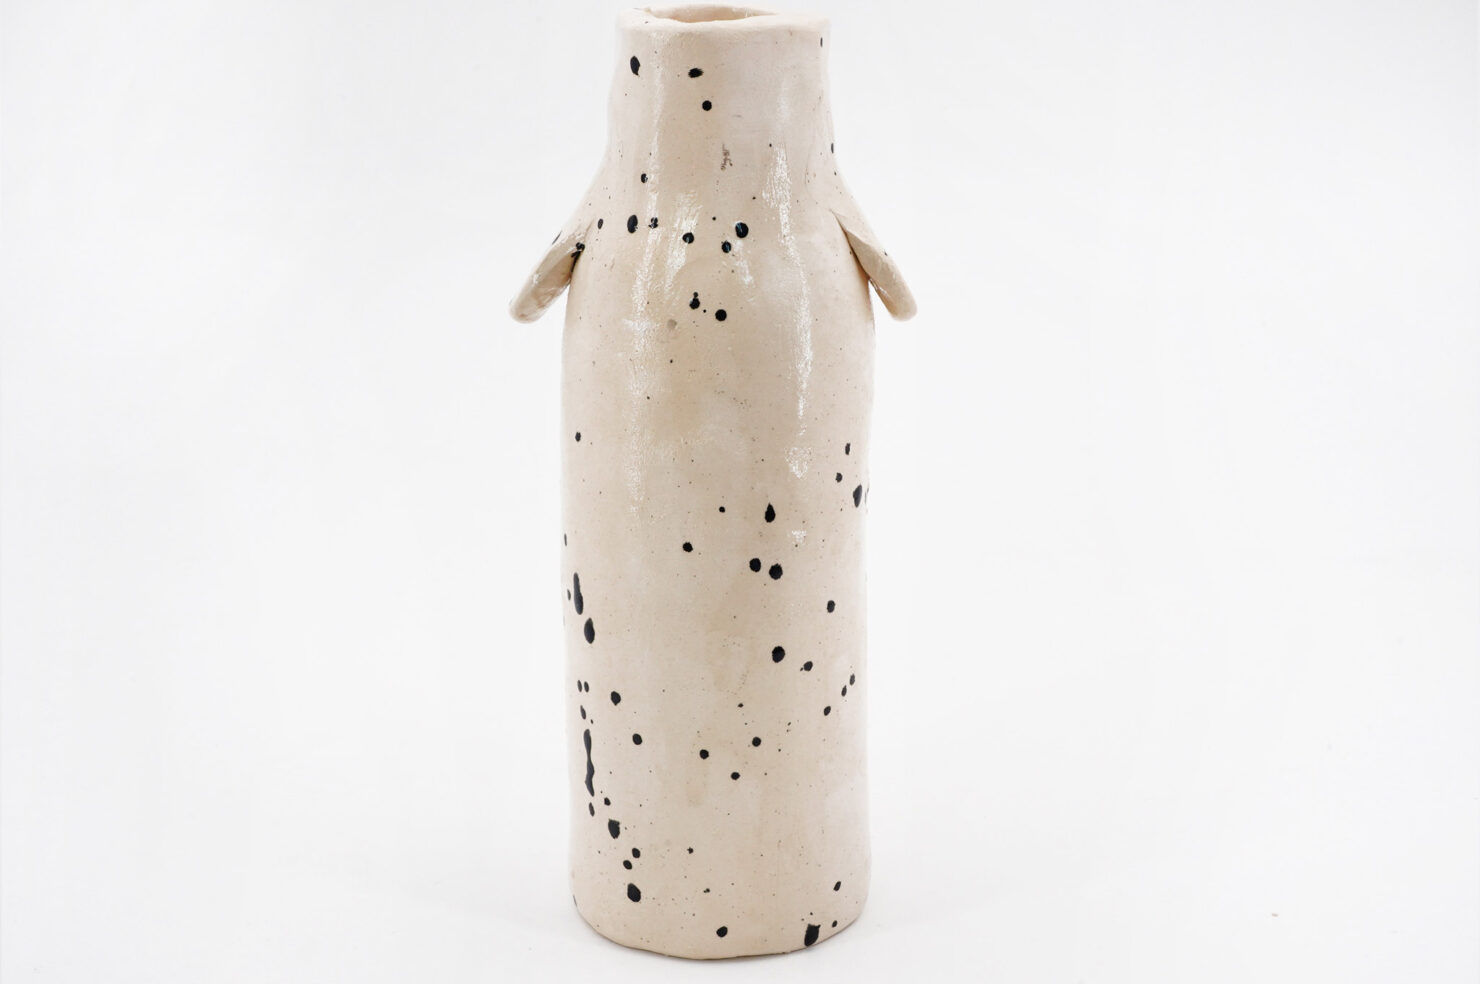 BLACK SPOTTED + BALL DOG VASE - KATIE KIMMEL